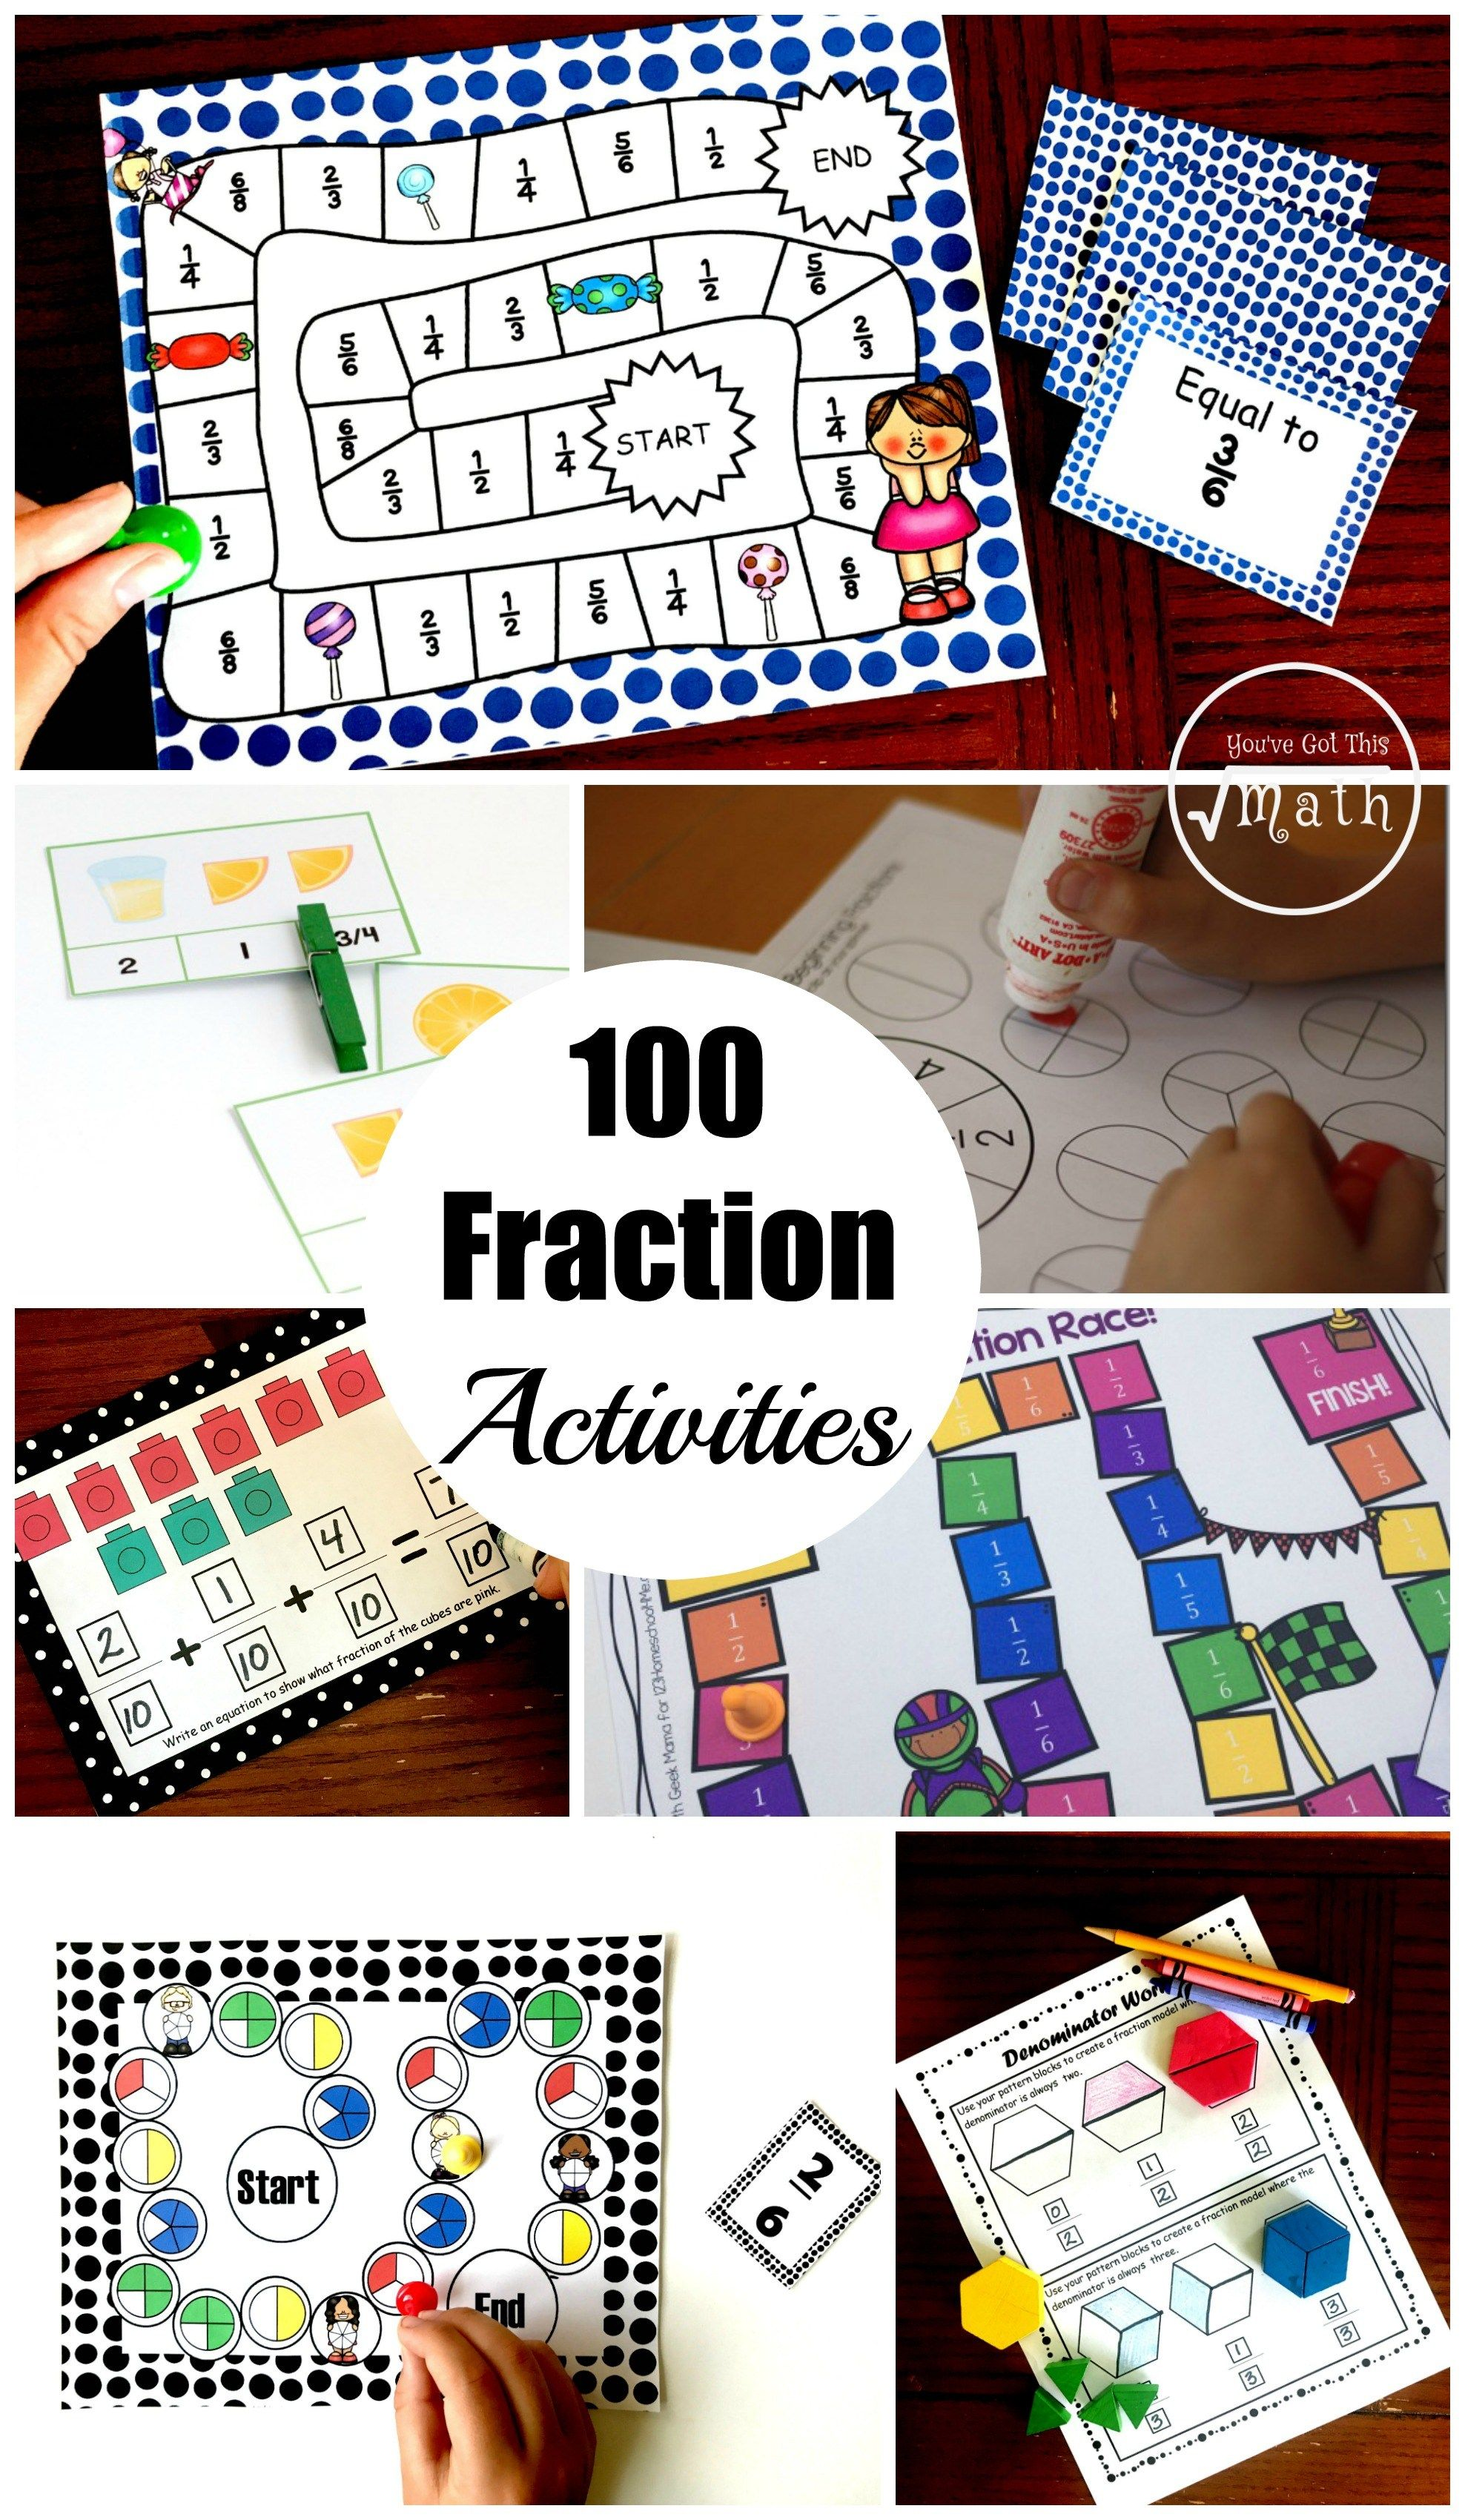 100 Fraction Activities To Help Your Students Master Fractions